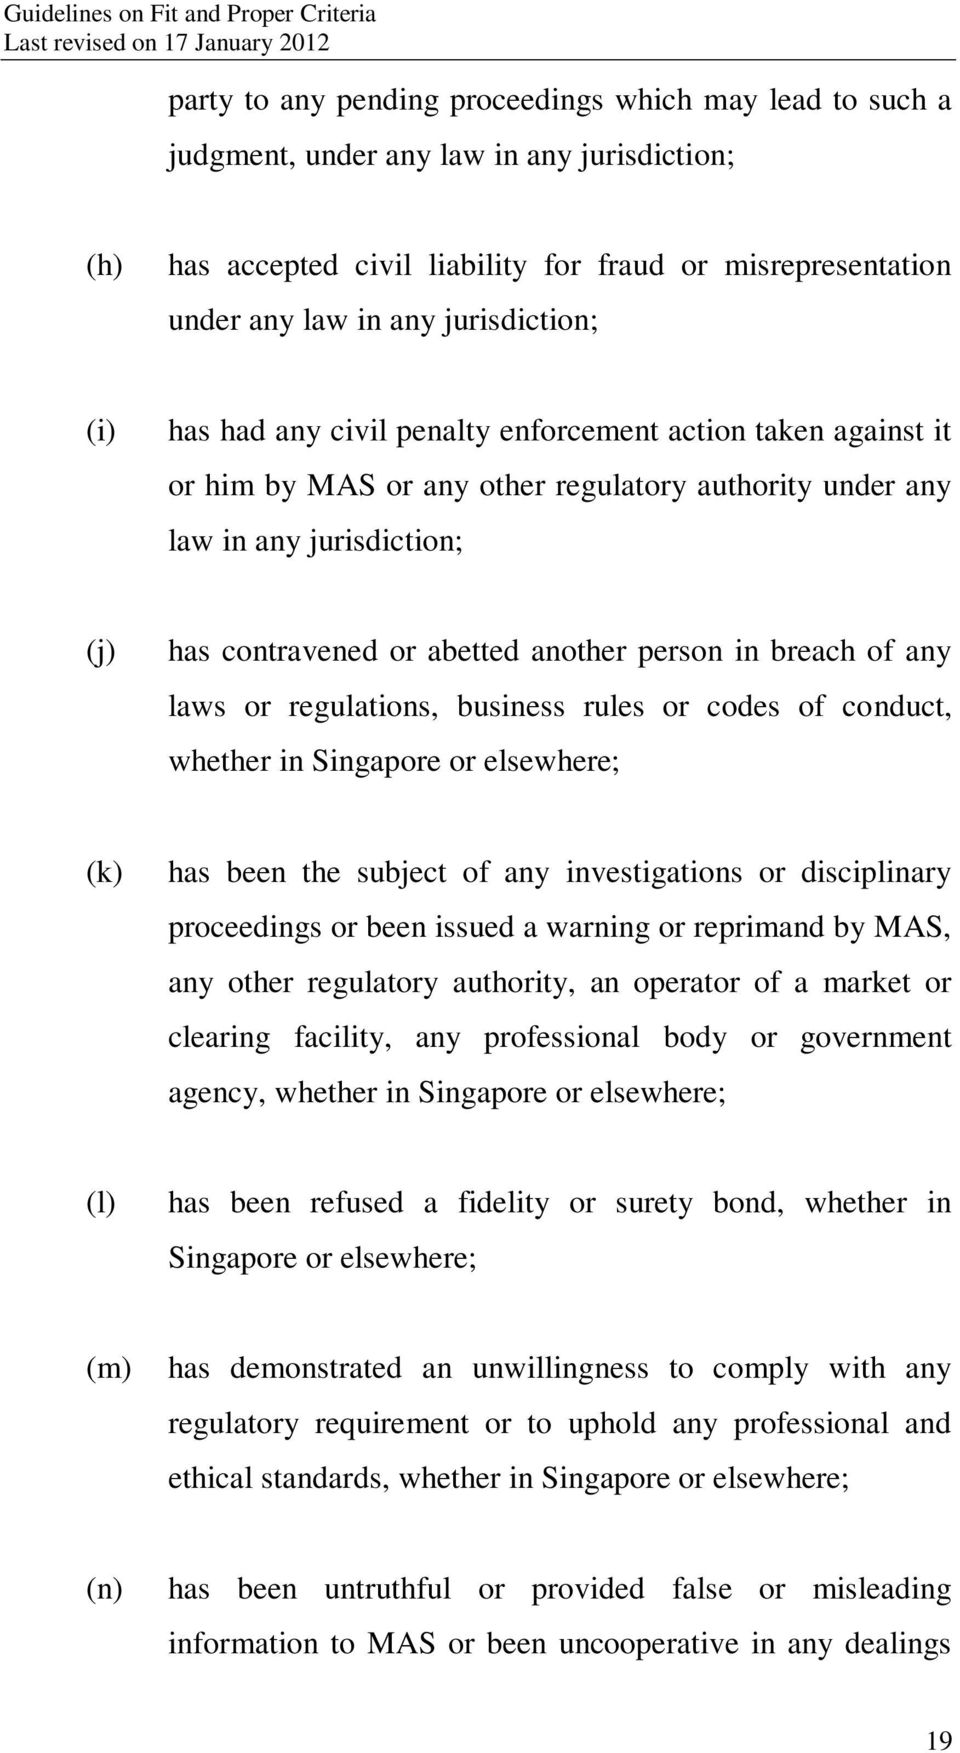 another person in breach of any laws or regulations, business rules or codes of conduct, whether in Singapore or elsewhere; (k) has been the subject of any investigations or disciplinary proceedings